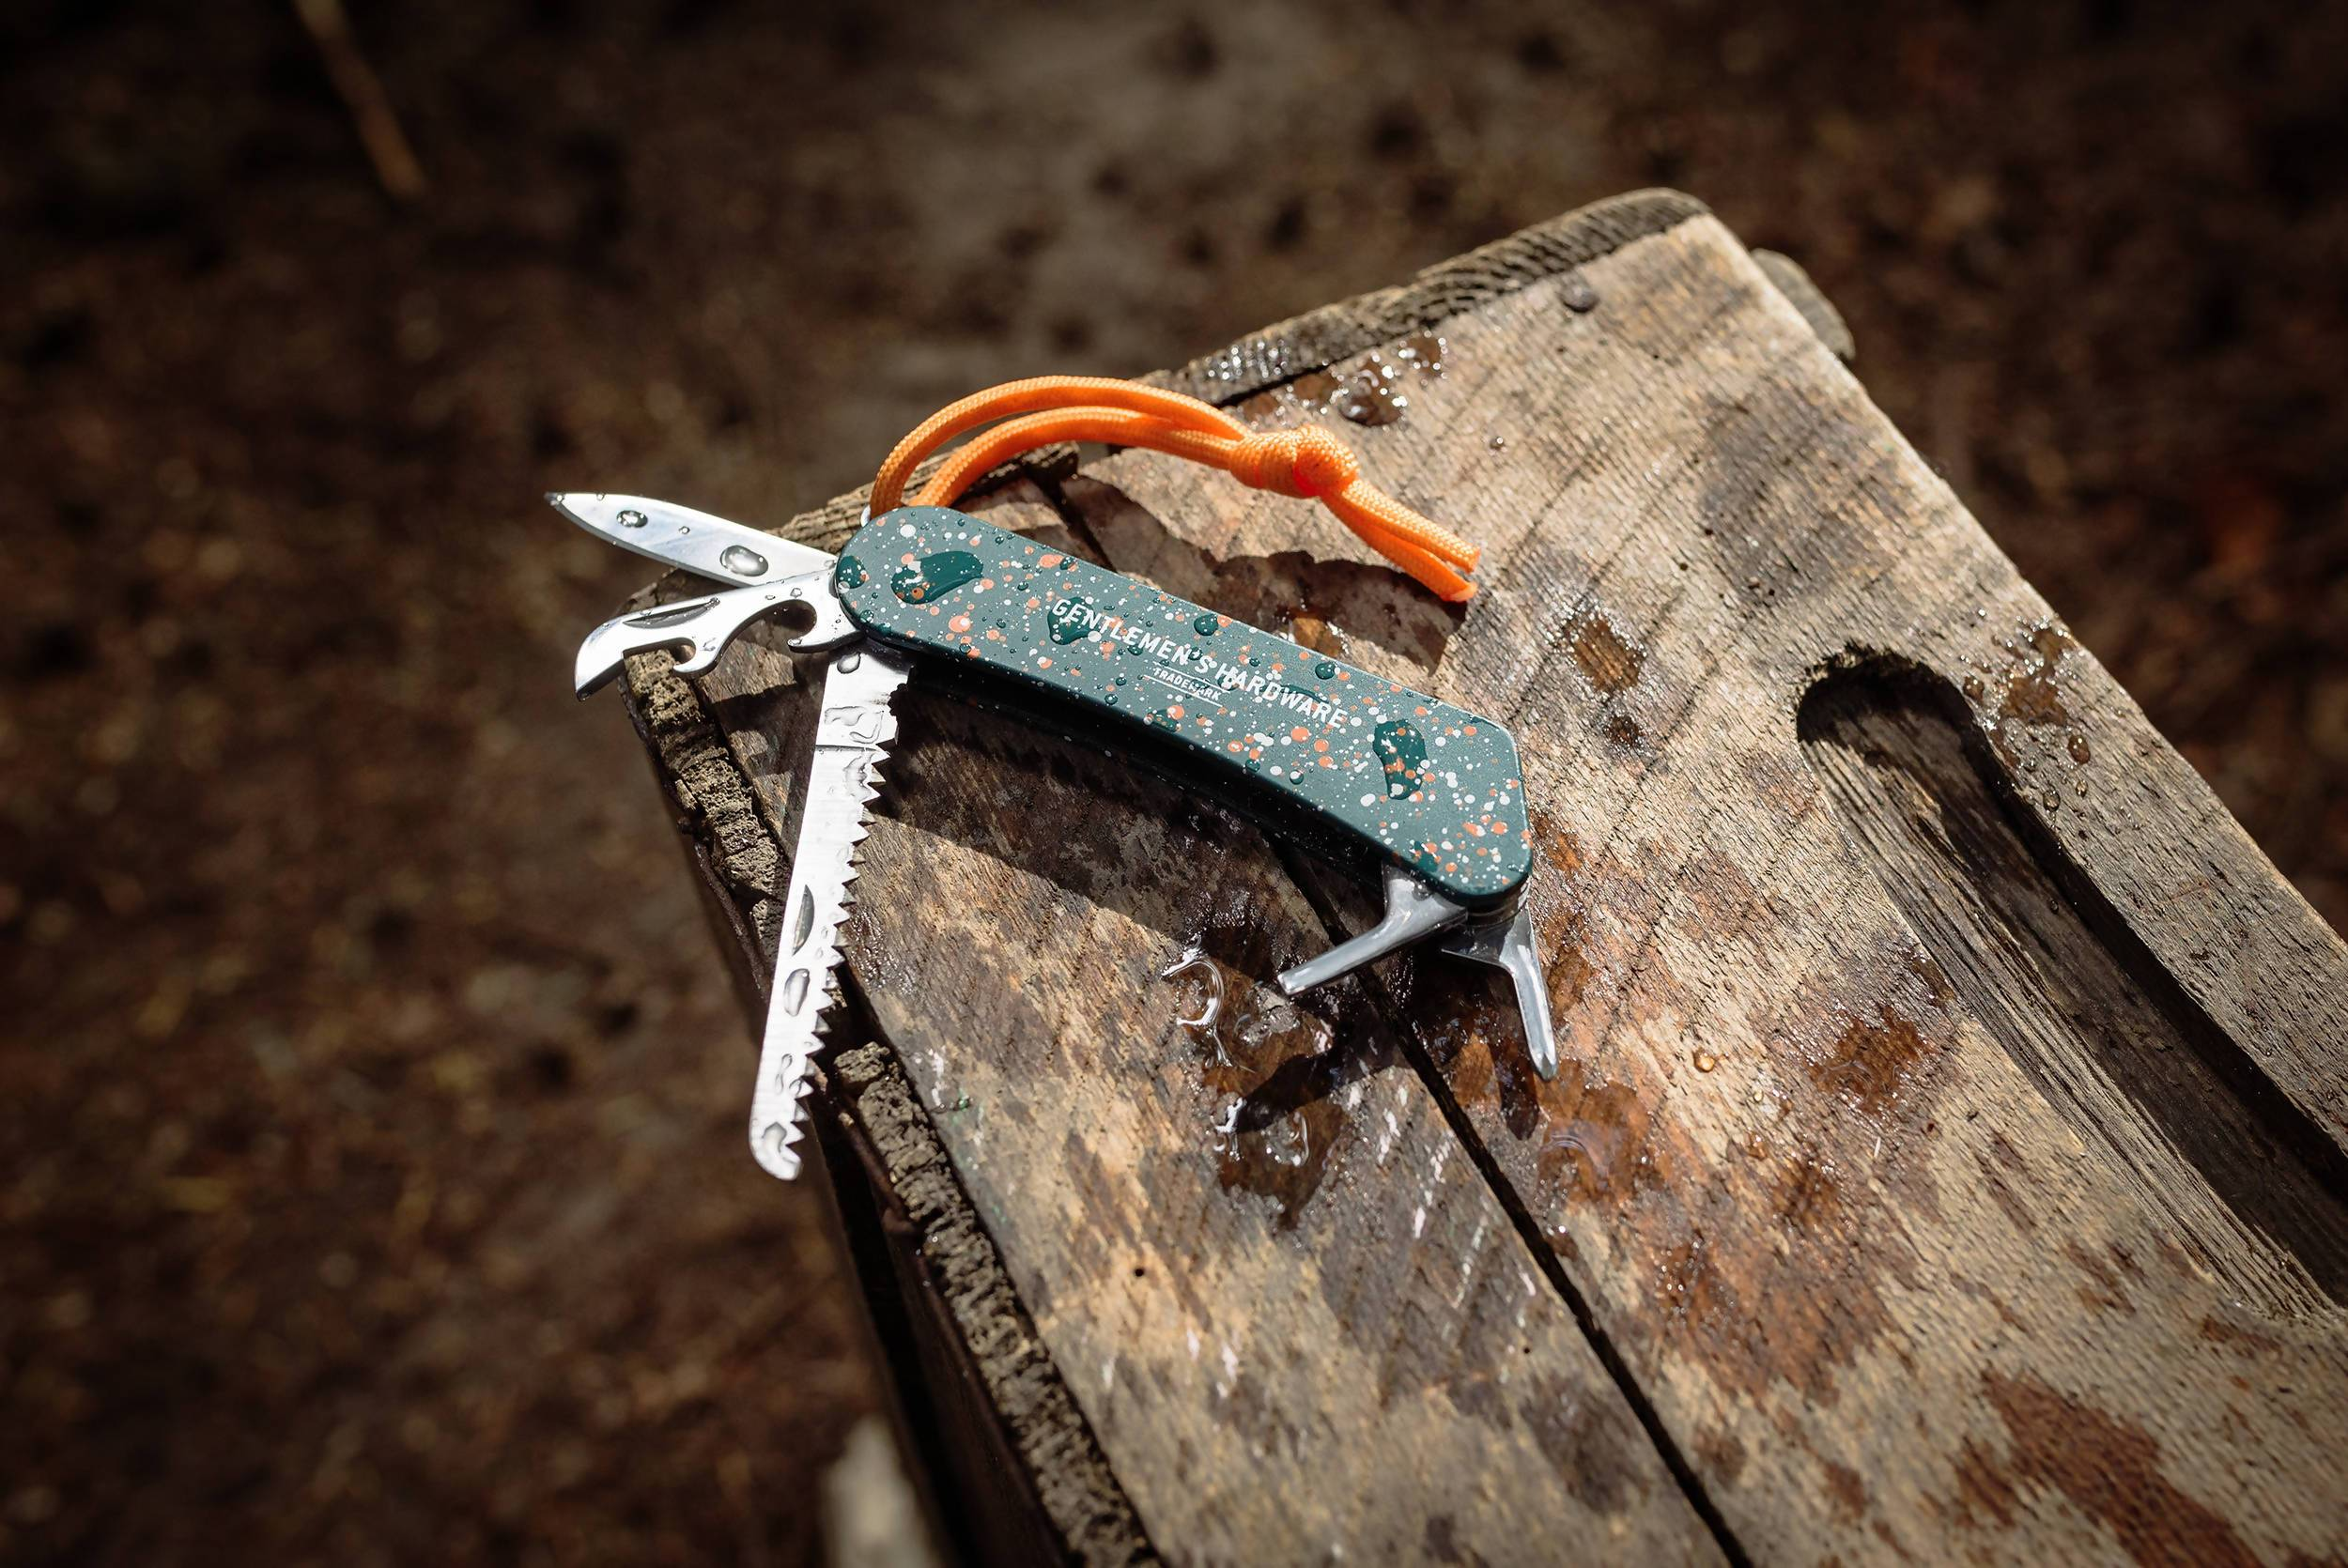 The Gentlemen's Hardware - Wilderness Multi-Tool - Travel Accessories - The Planet Collection - Naiise